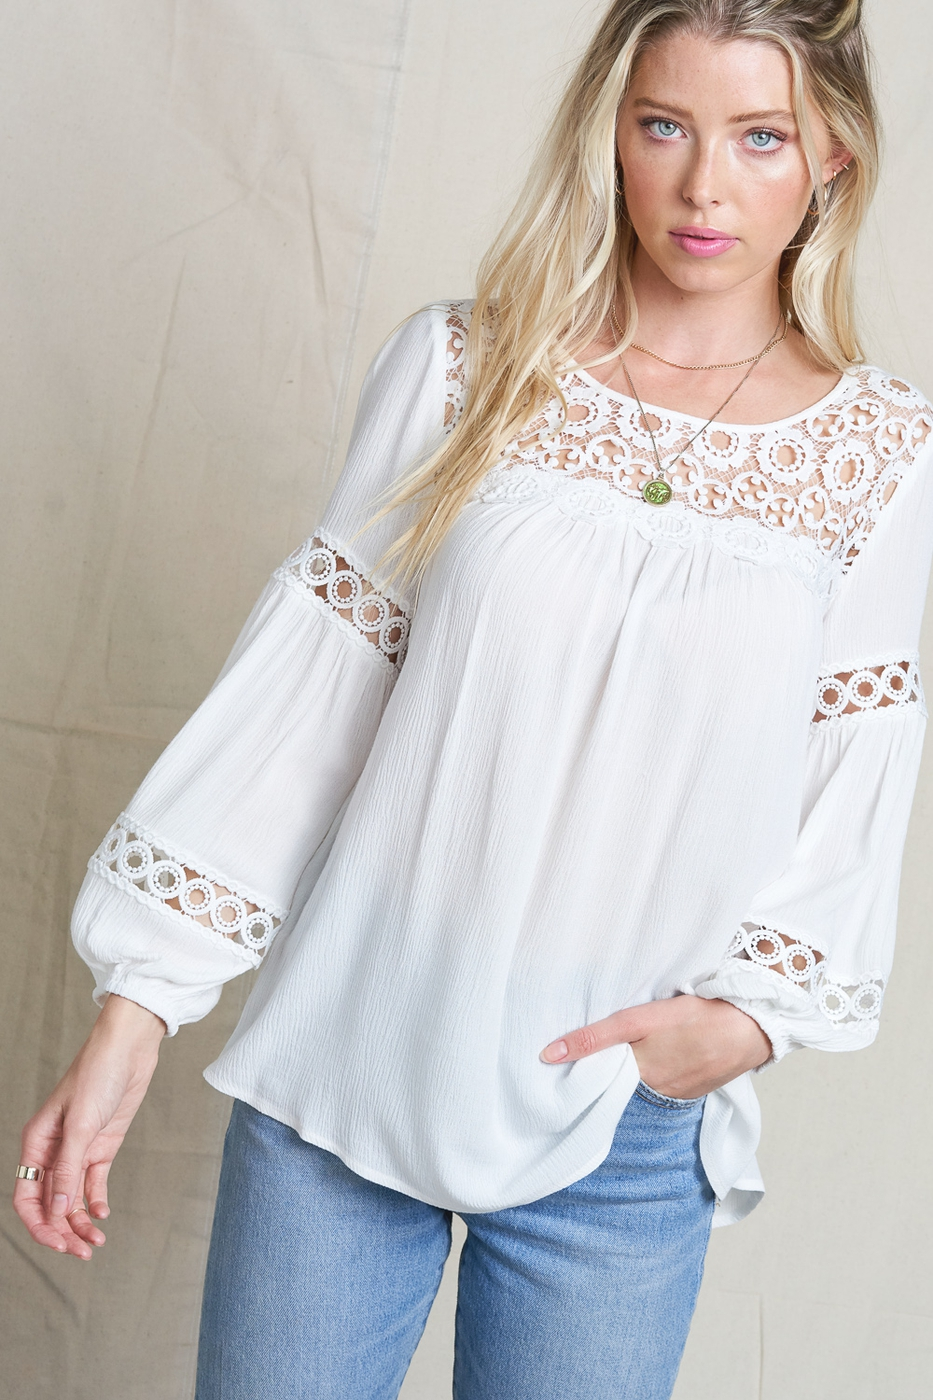 EMBROIDERED BLOUSE ROUND NECK TOP - orangeshine.com